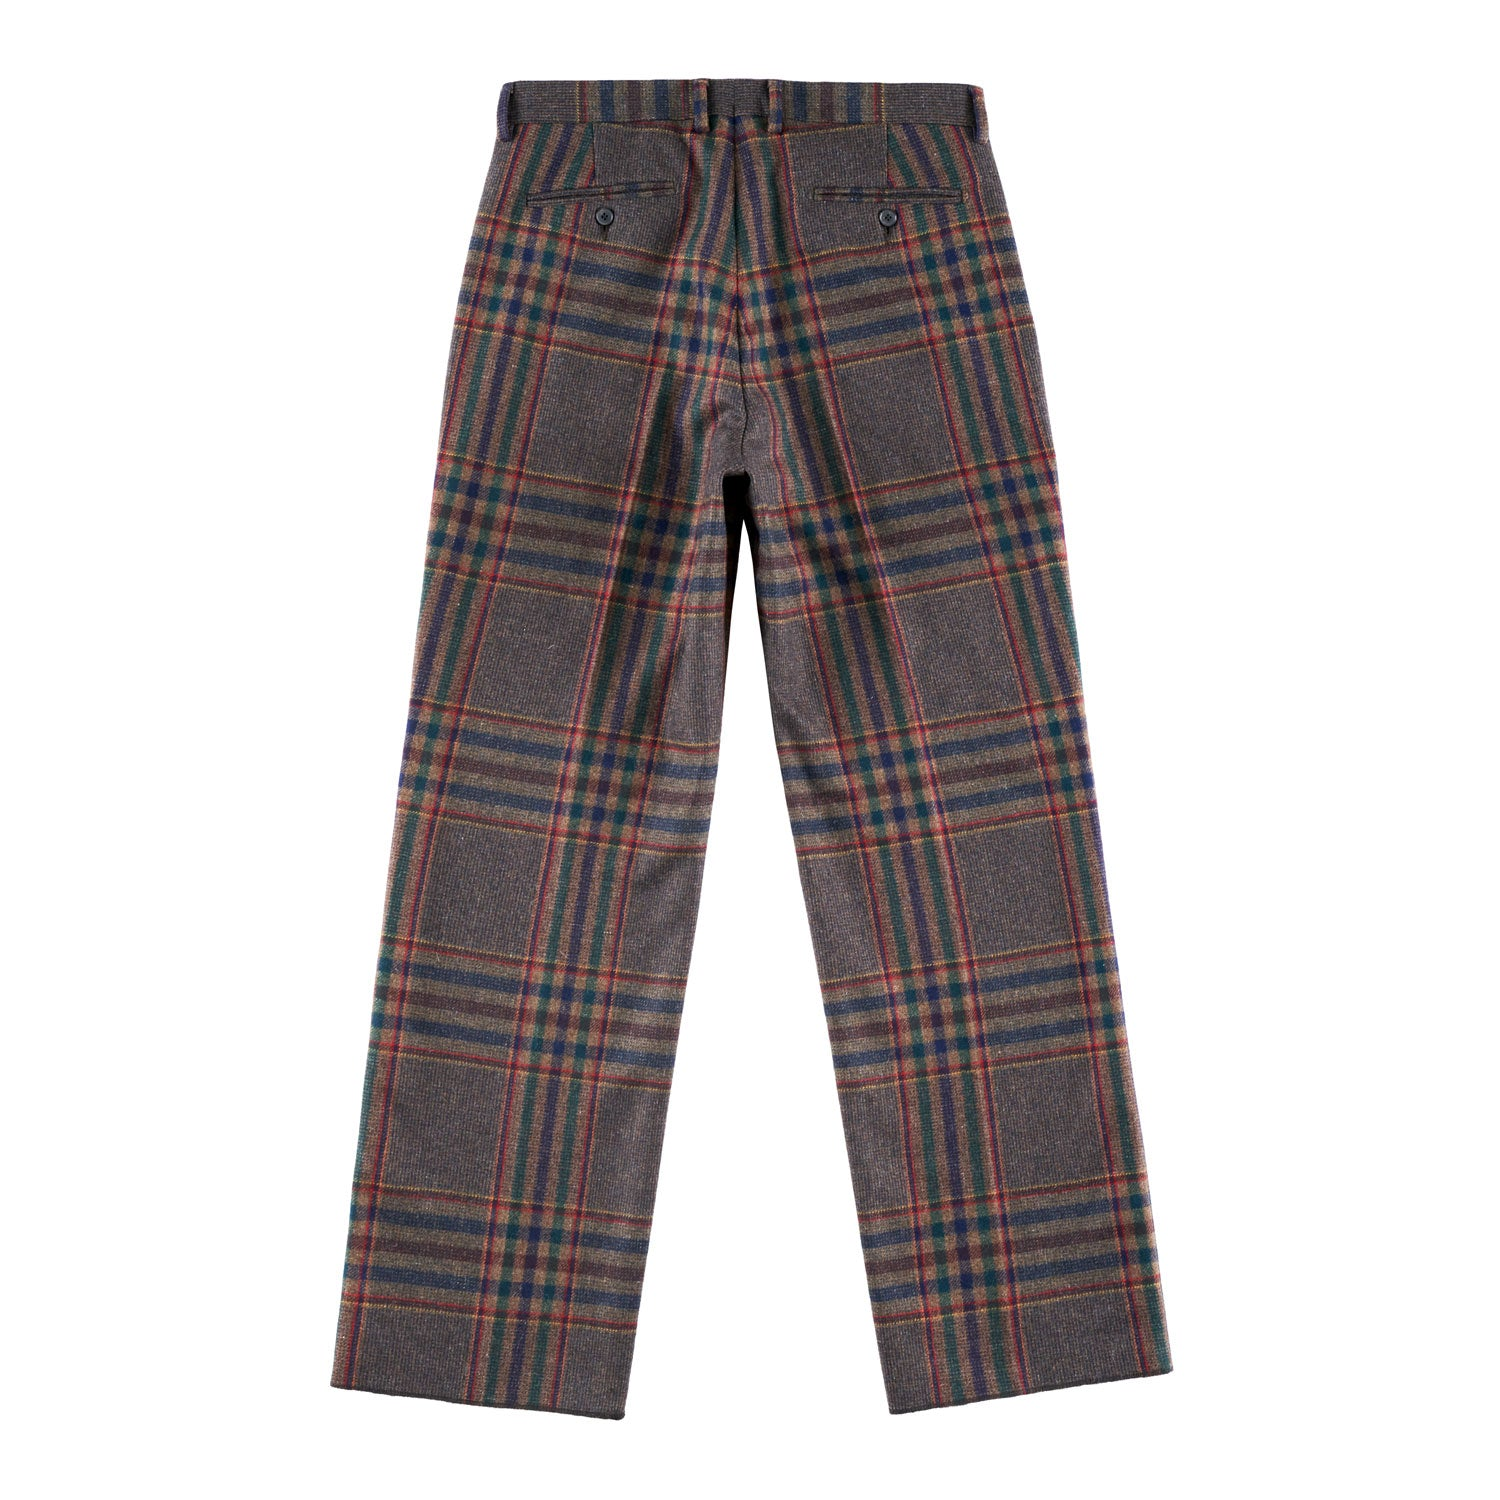 Multi-Plaid Flat Front Trouser